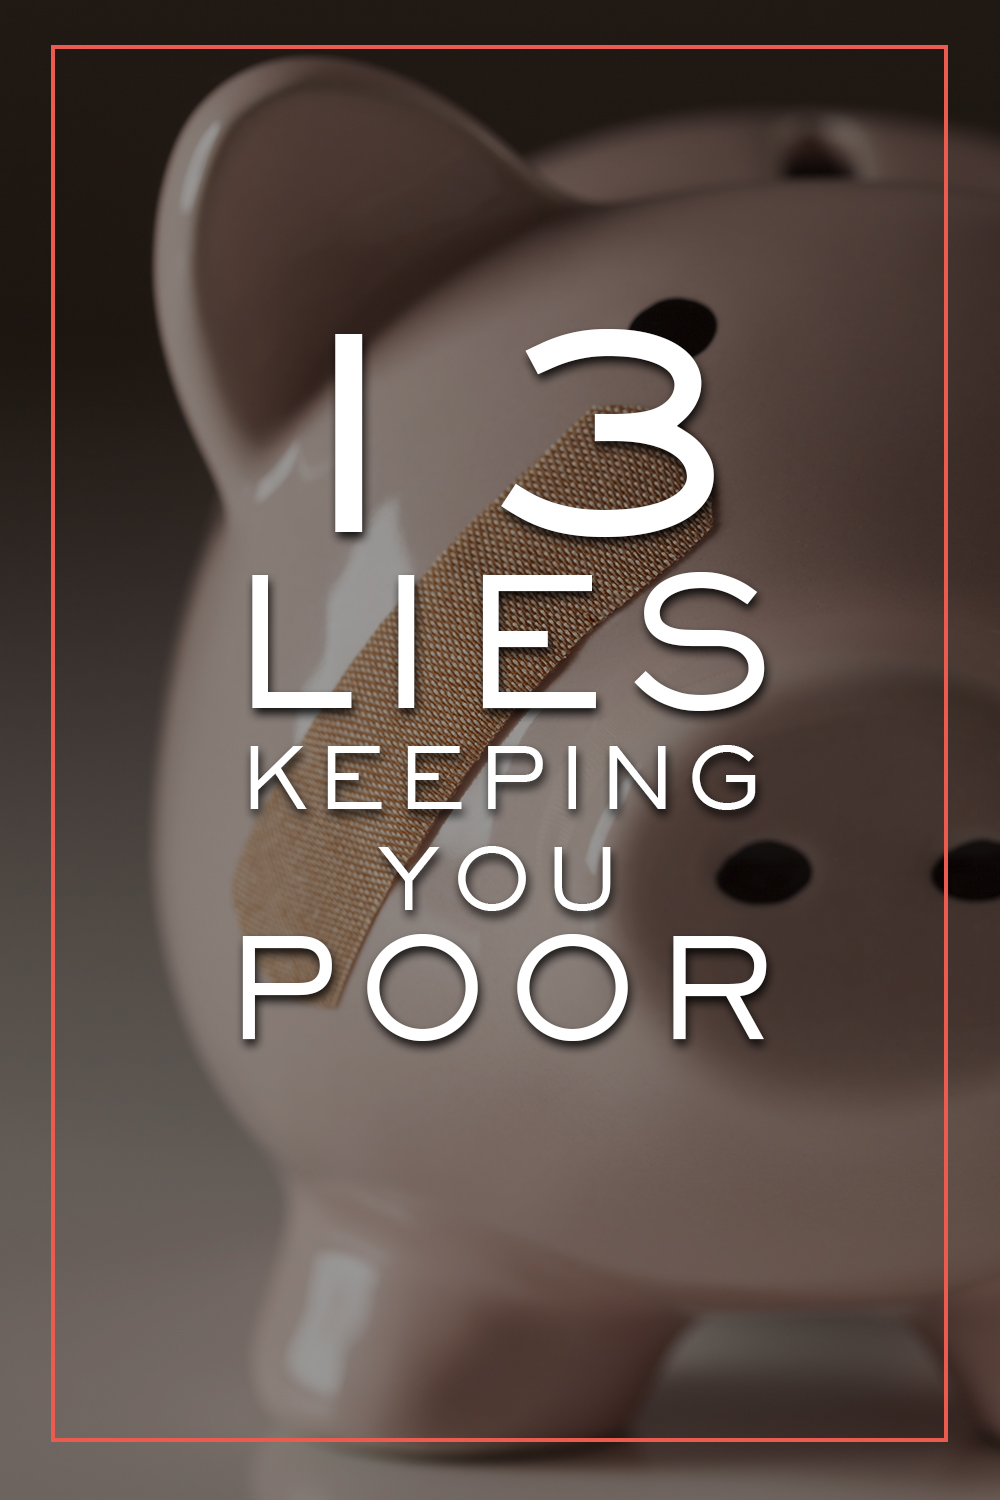 These 13 lies might just be keeping you poor...